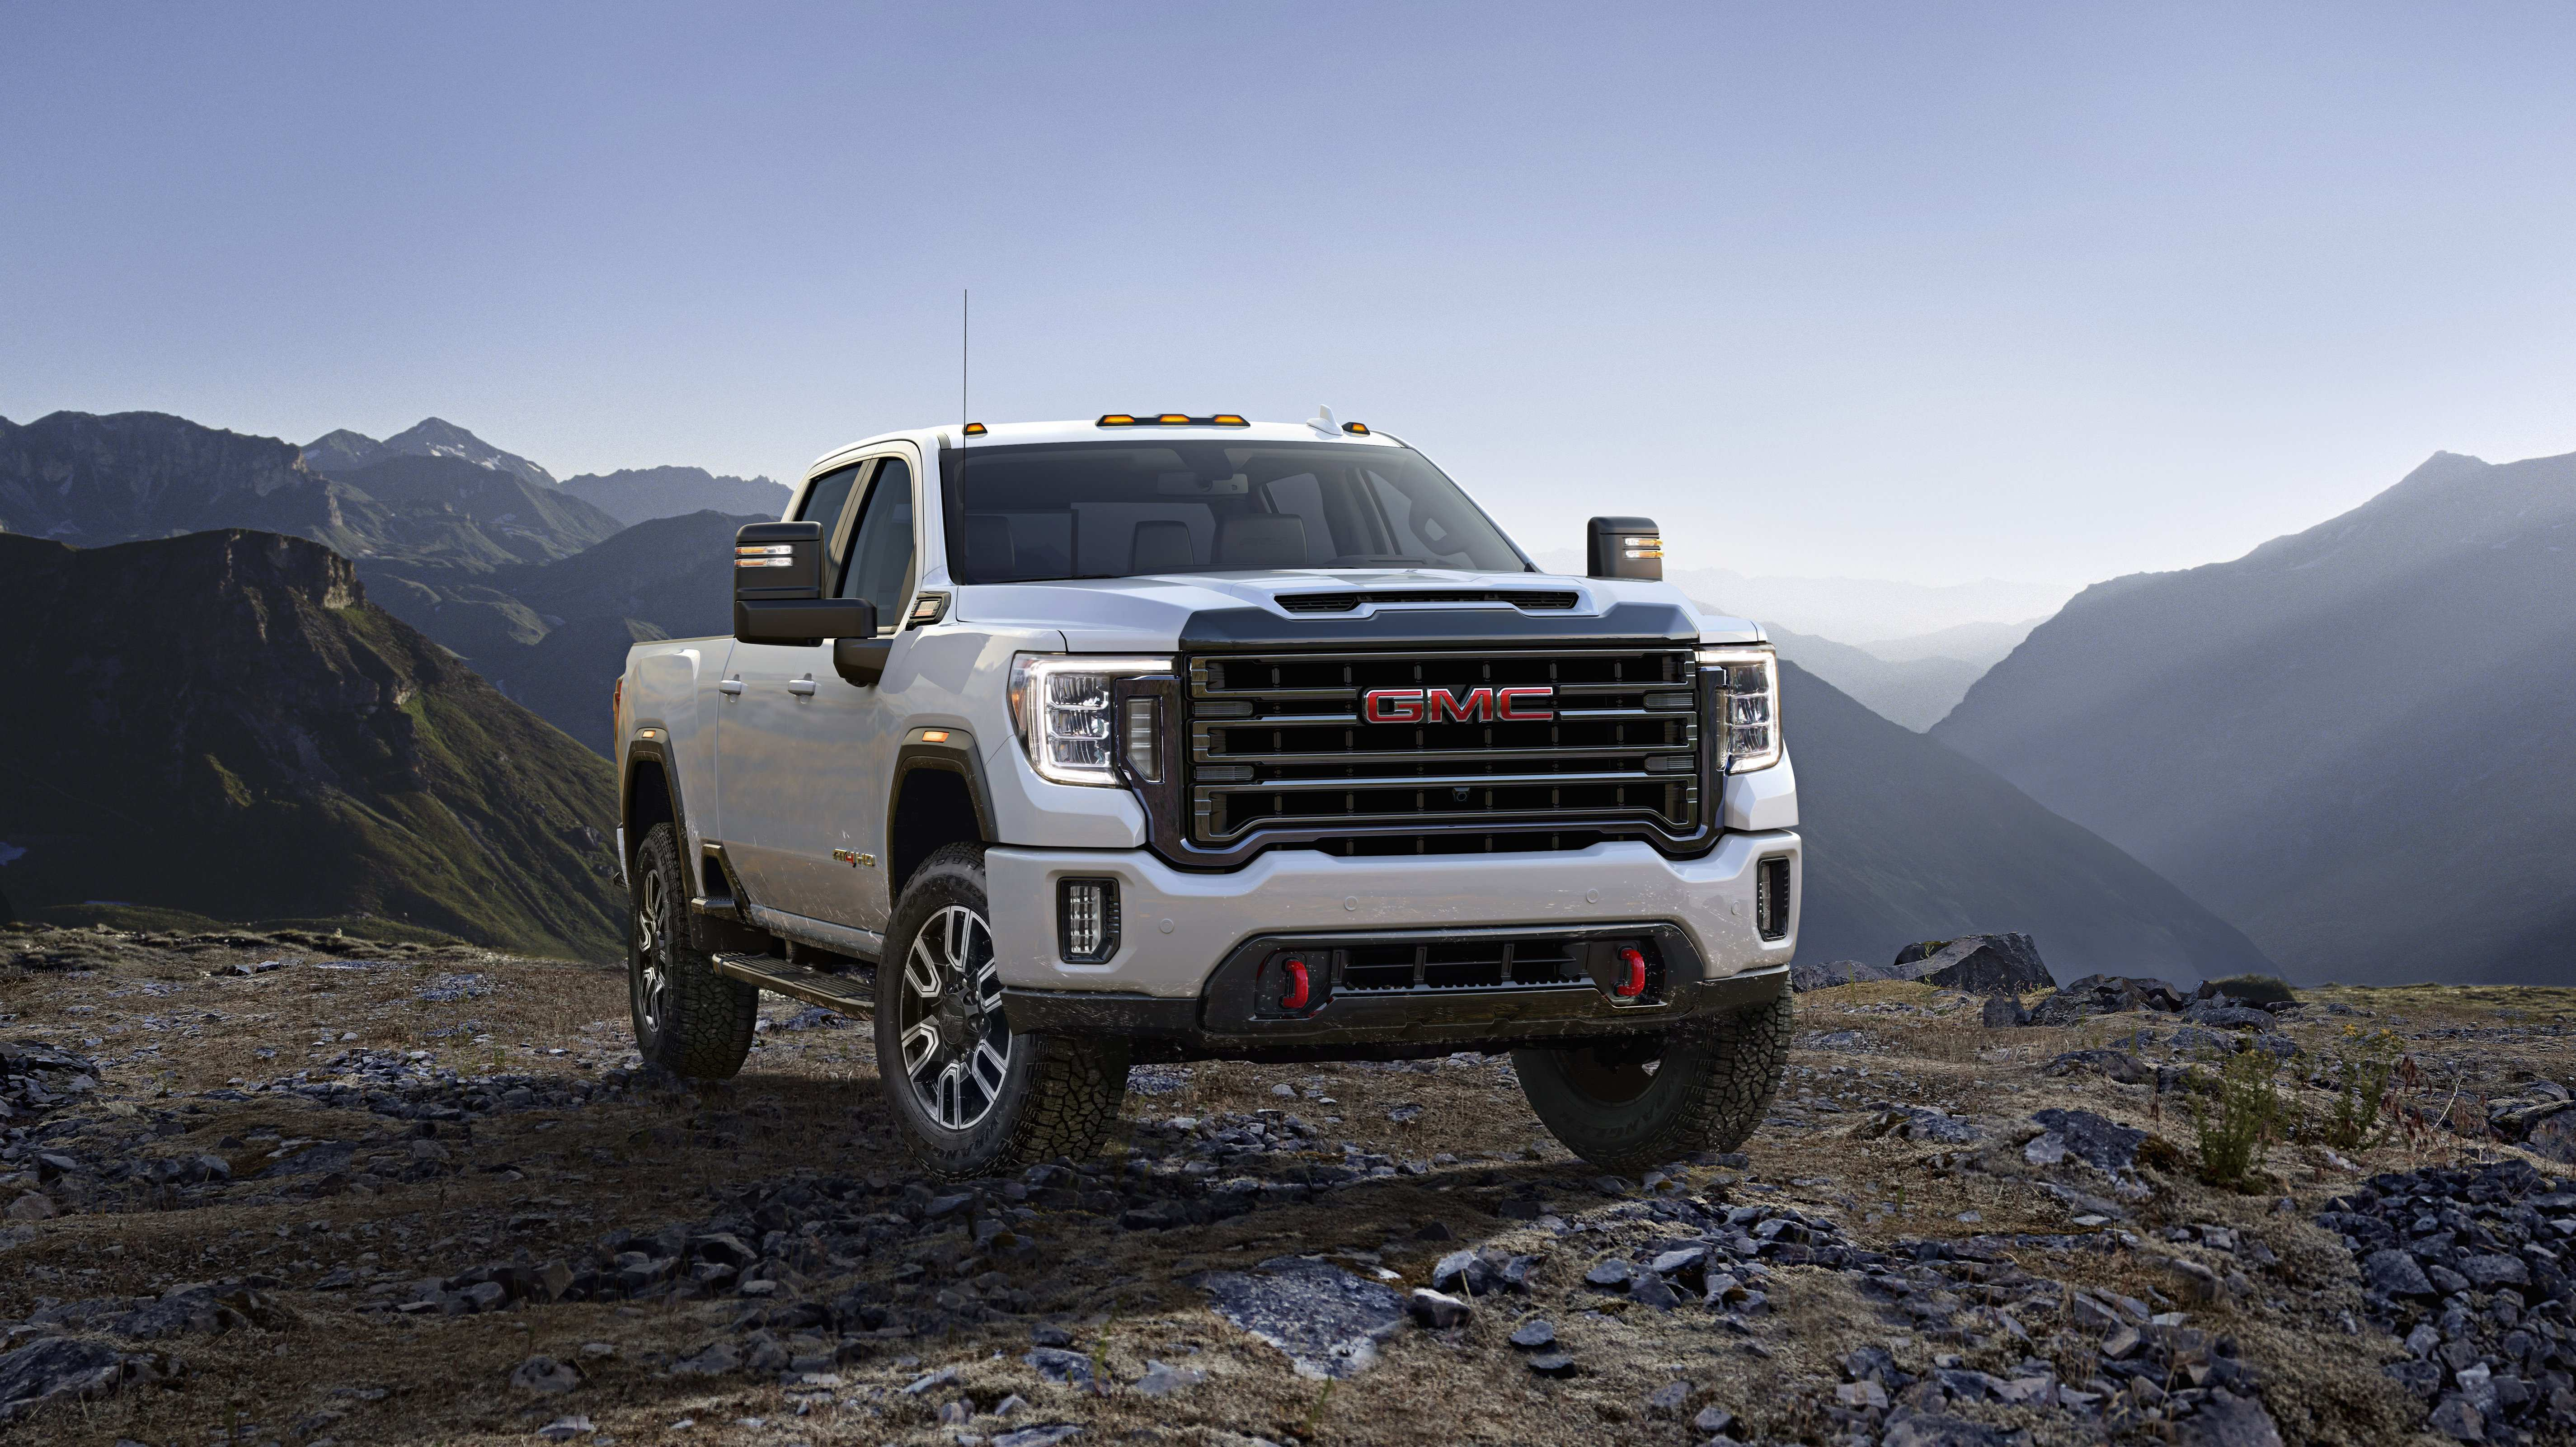 97 All New GMC At4 2020 Redesign And Review